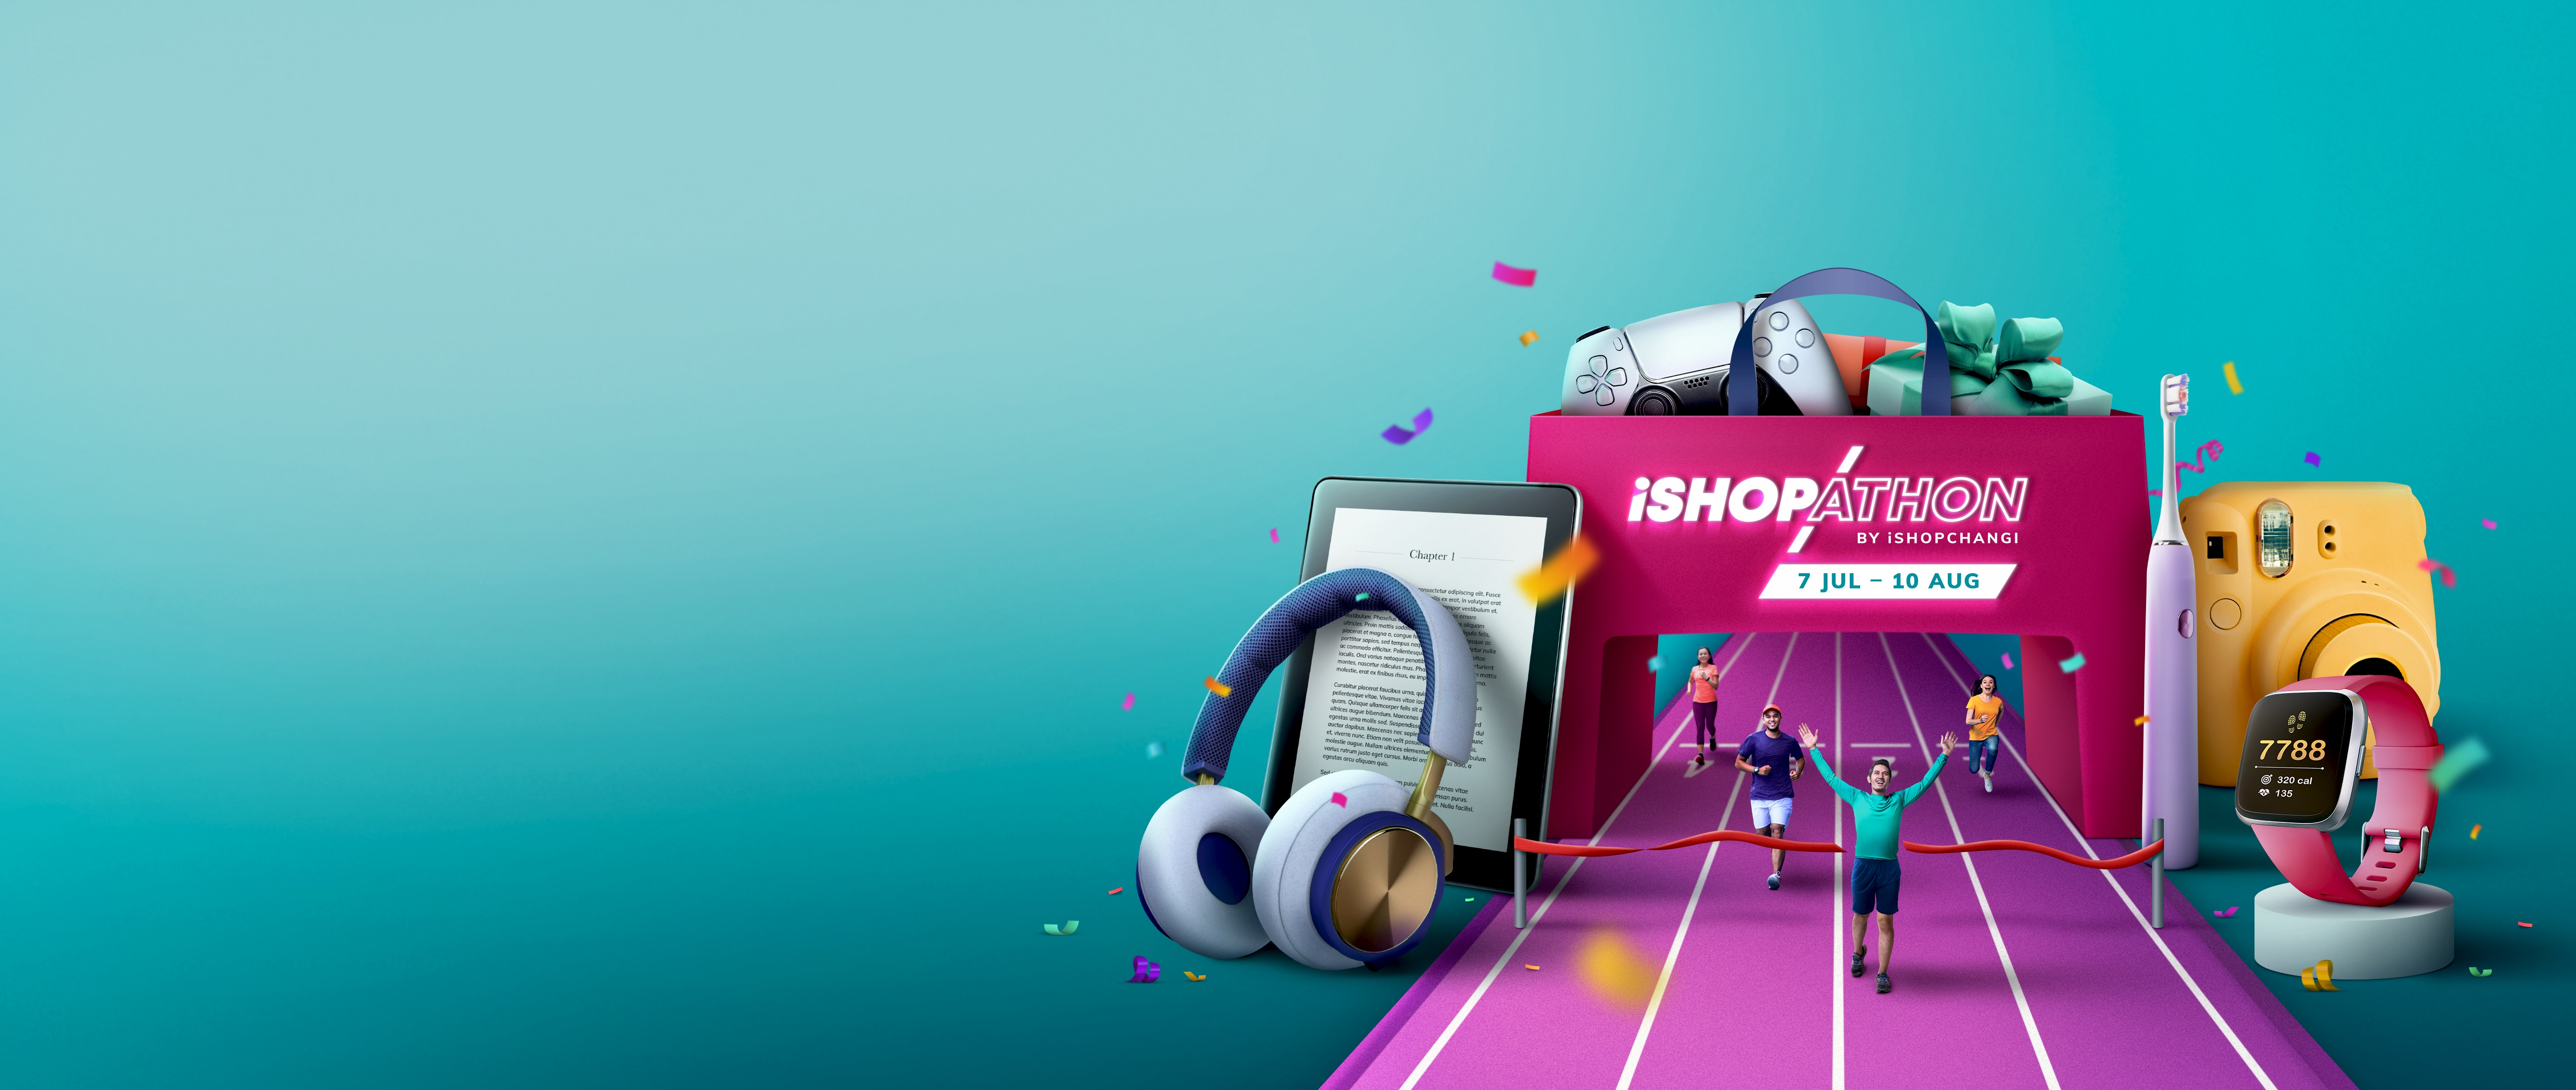 Shop Till You Drop with iShopChangis 8.8 Sales During Their 5-Week Campaign iShopathon